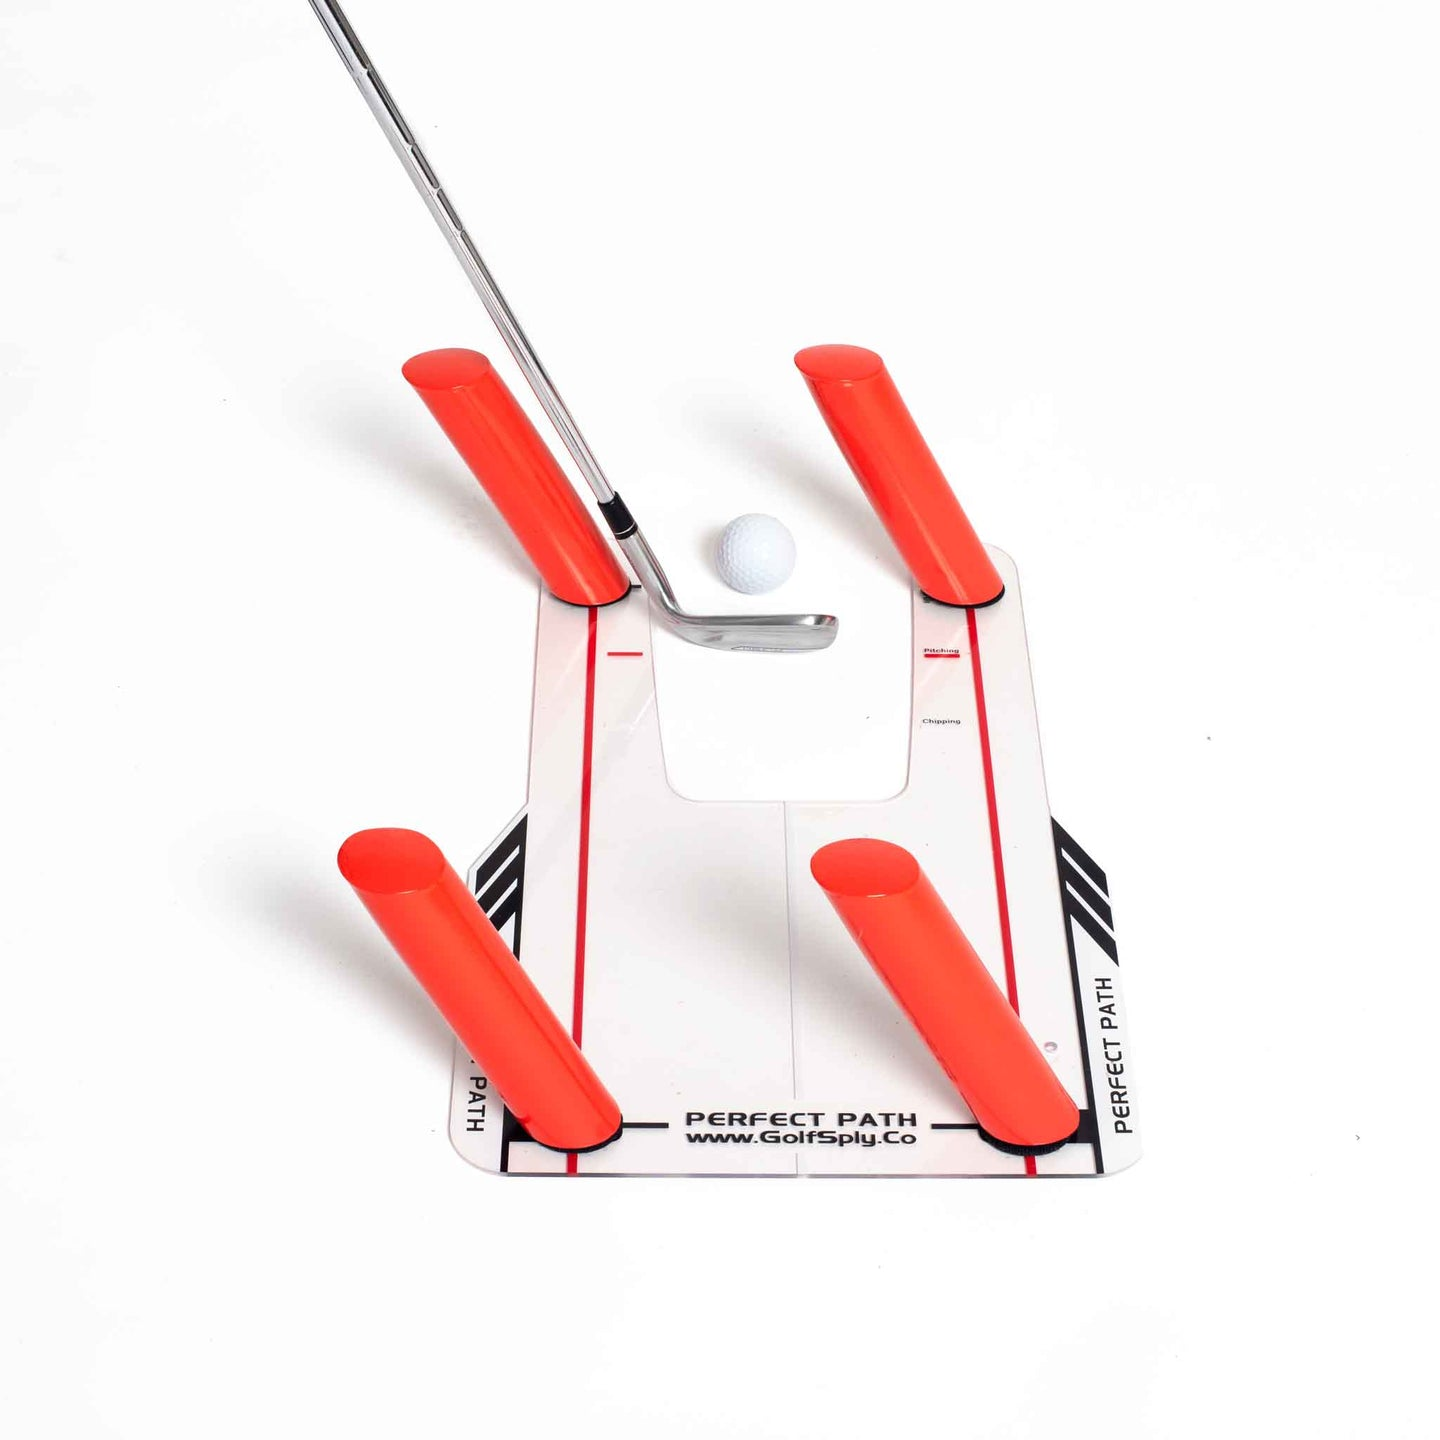 Perfect Path - Swing Trainer - ohksports